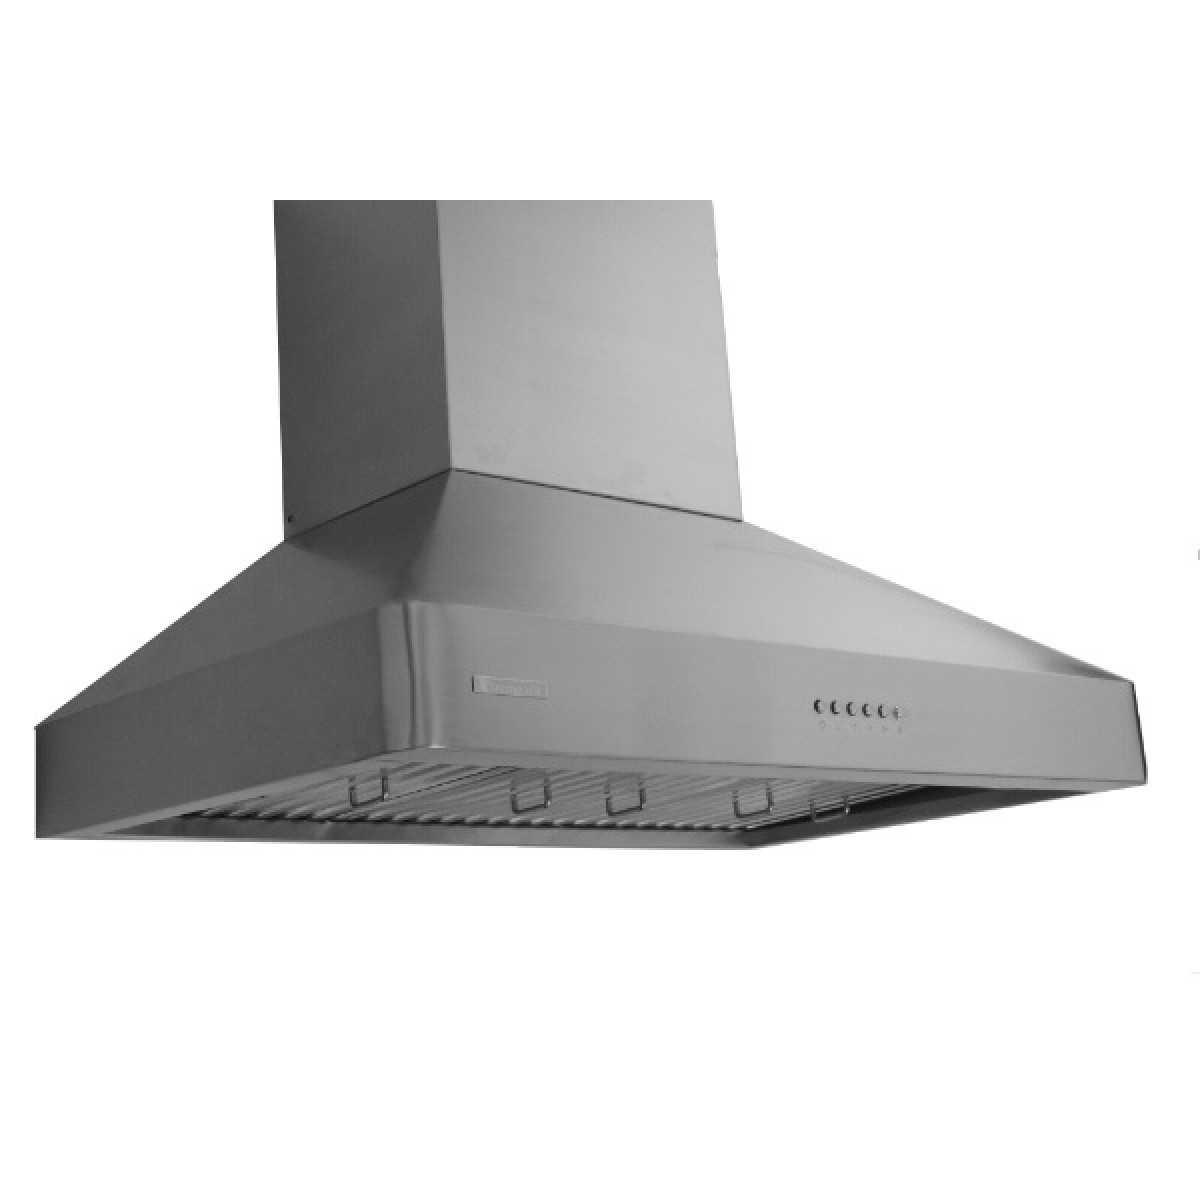 Xtremeair 42 Inch Wall Mount Stainless Steel Range Hood